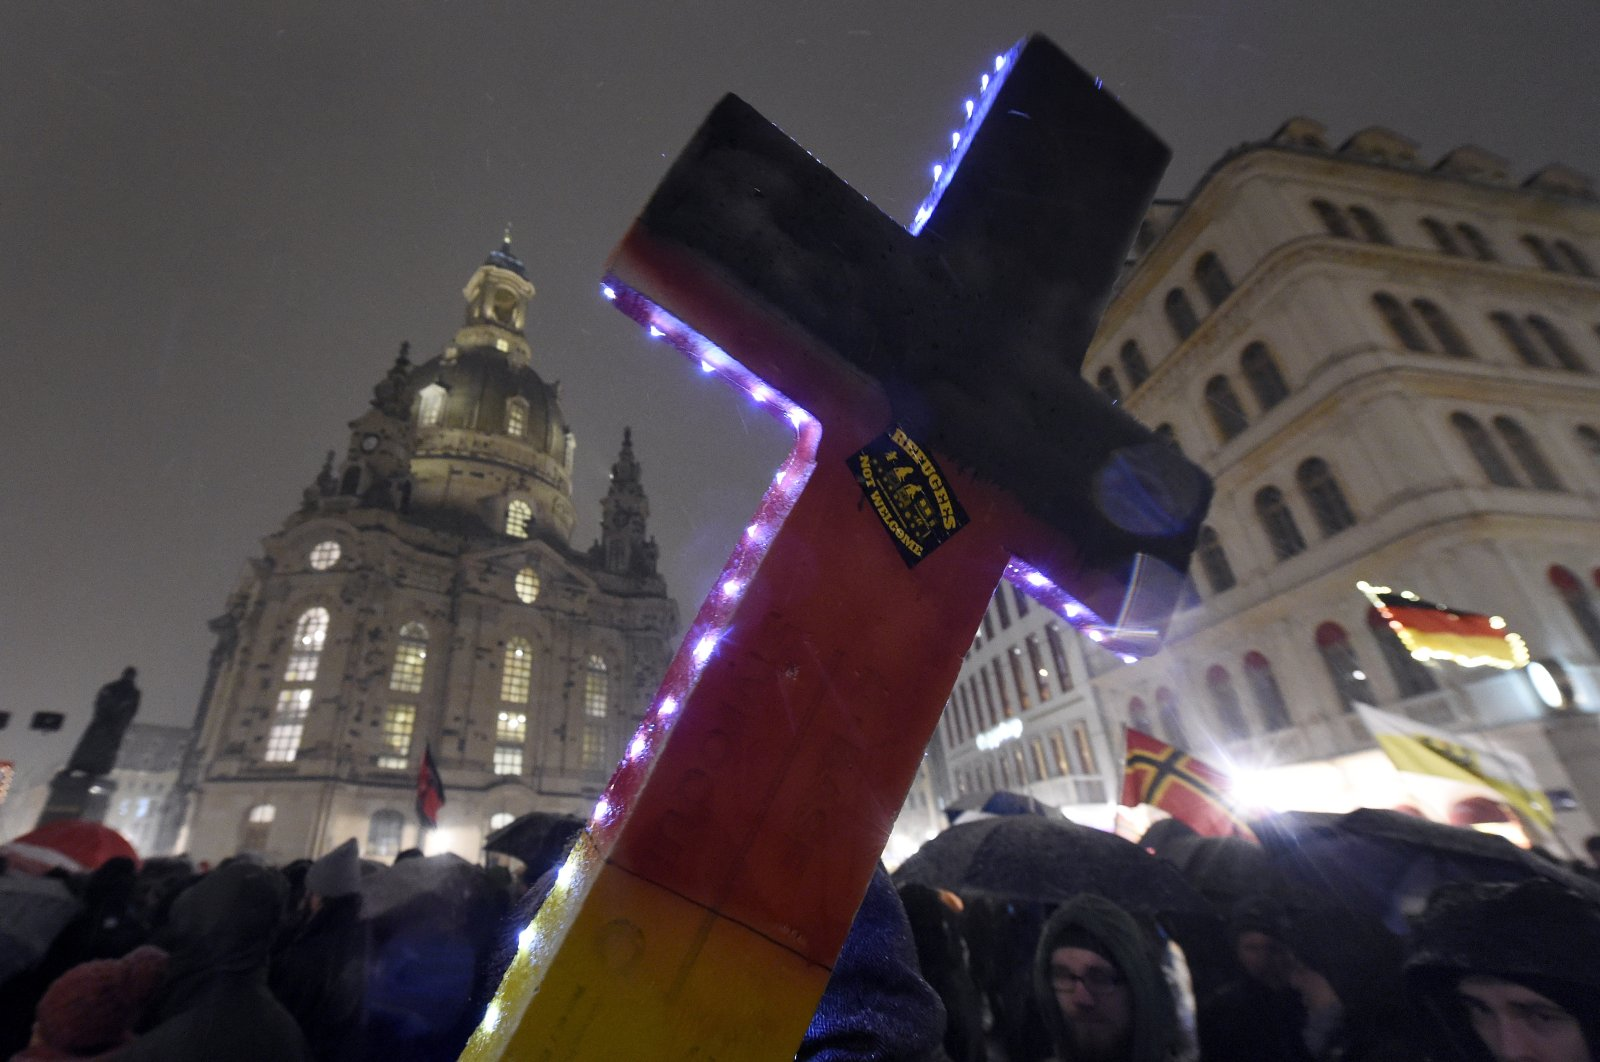 """An illuminated cross with a sticker reading """"refugees not welcome"""" is pictured during a demonstration of PEGIDA close to the Frauenkirche church in Dresden, eastern Germany, Feb. 29, 2016. (AP Photo)"""